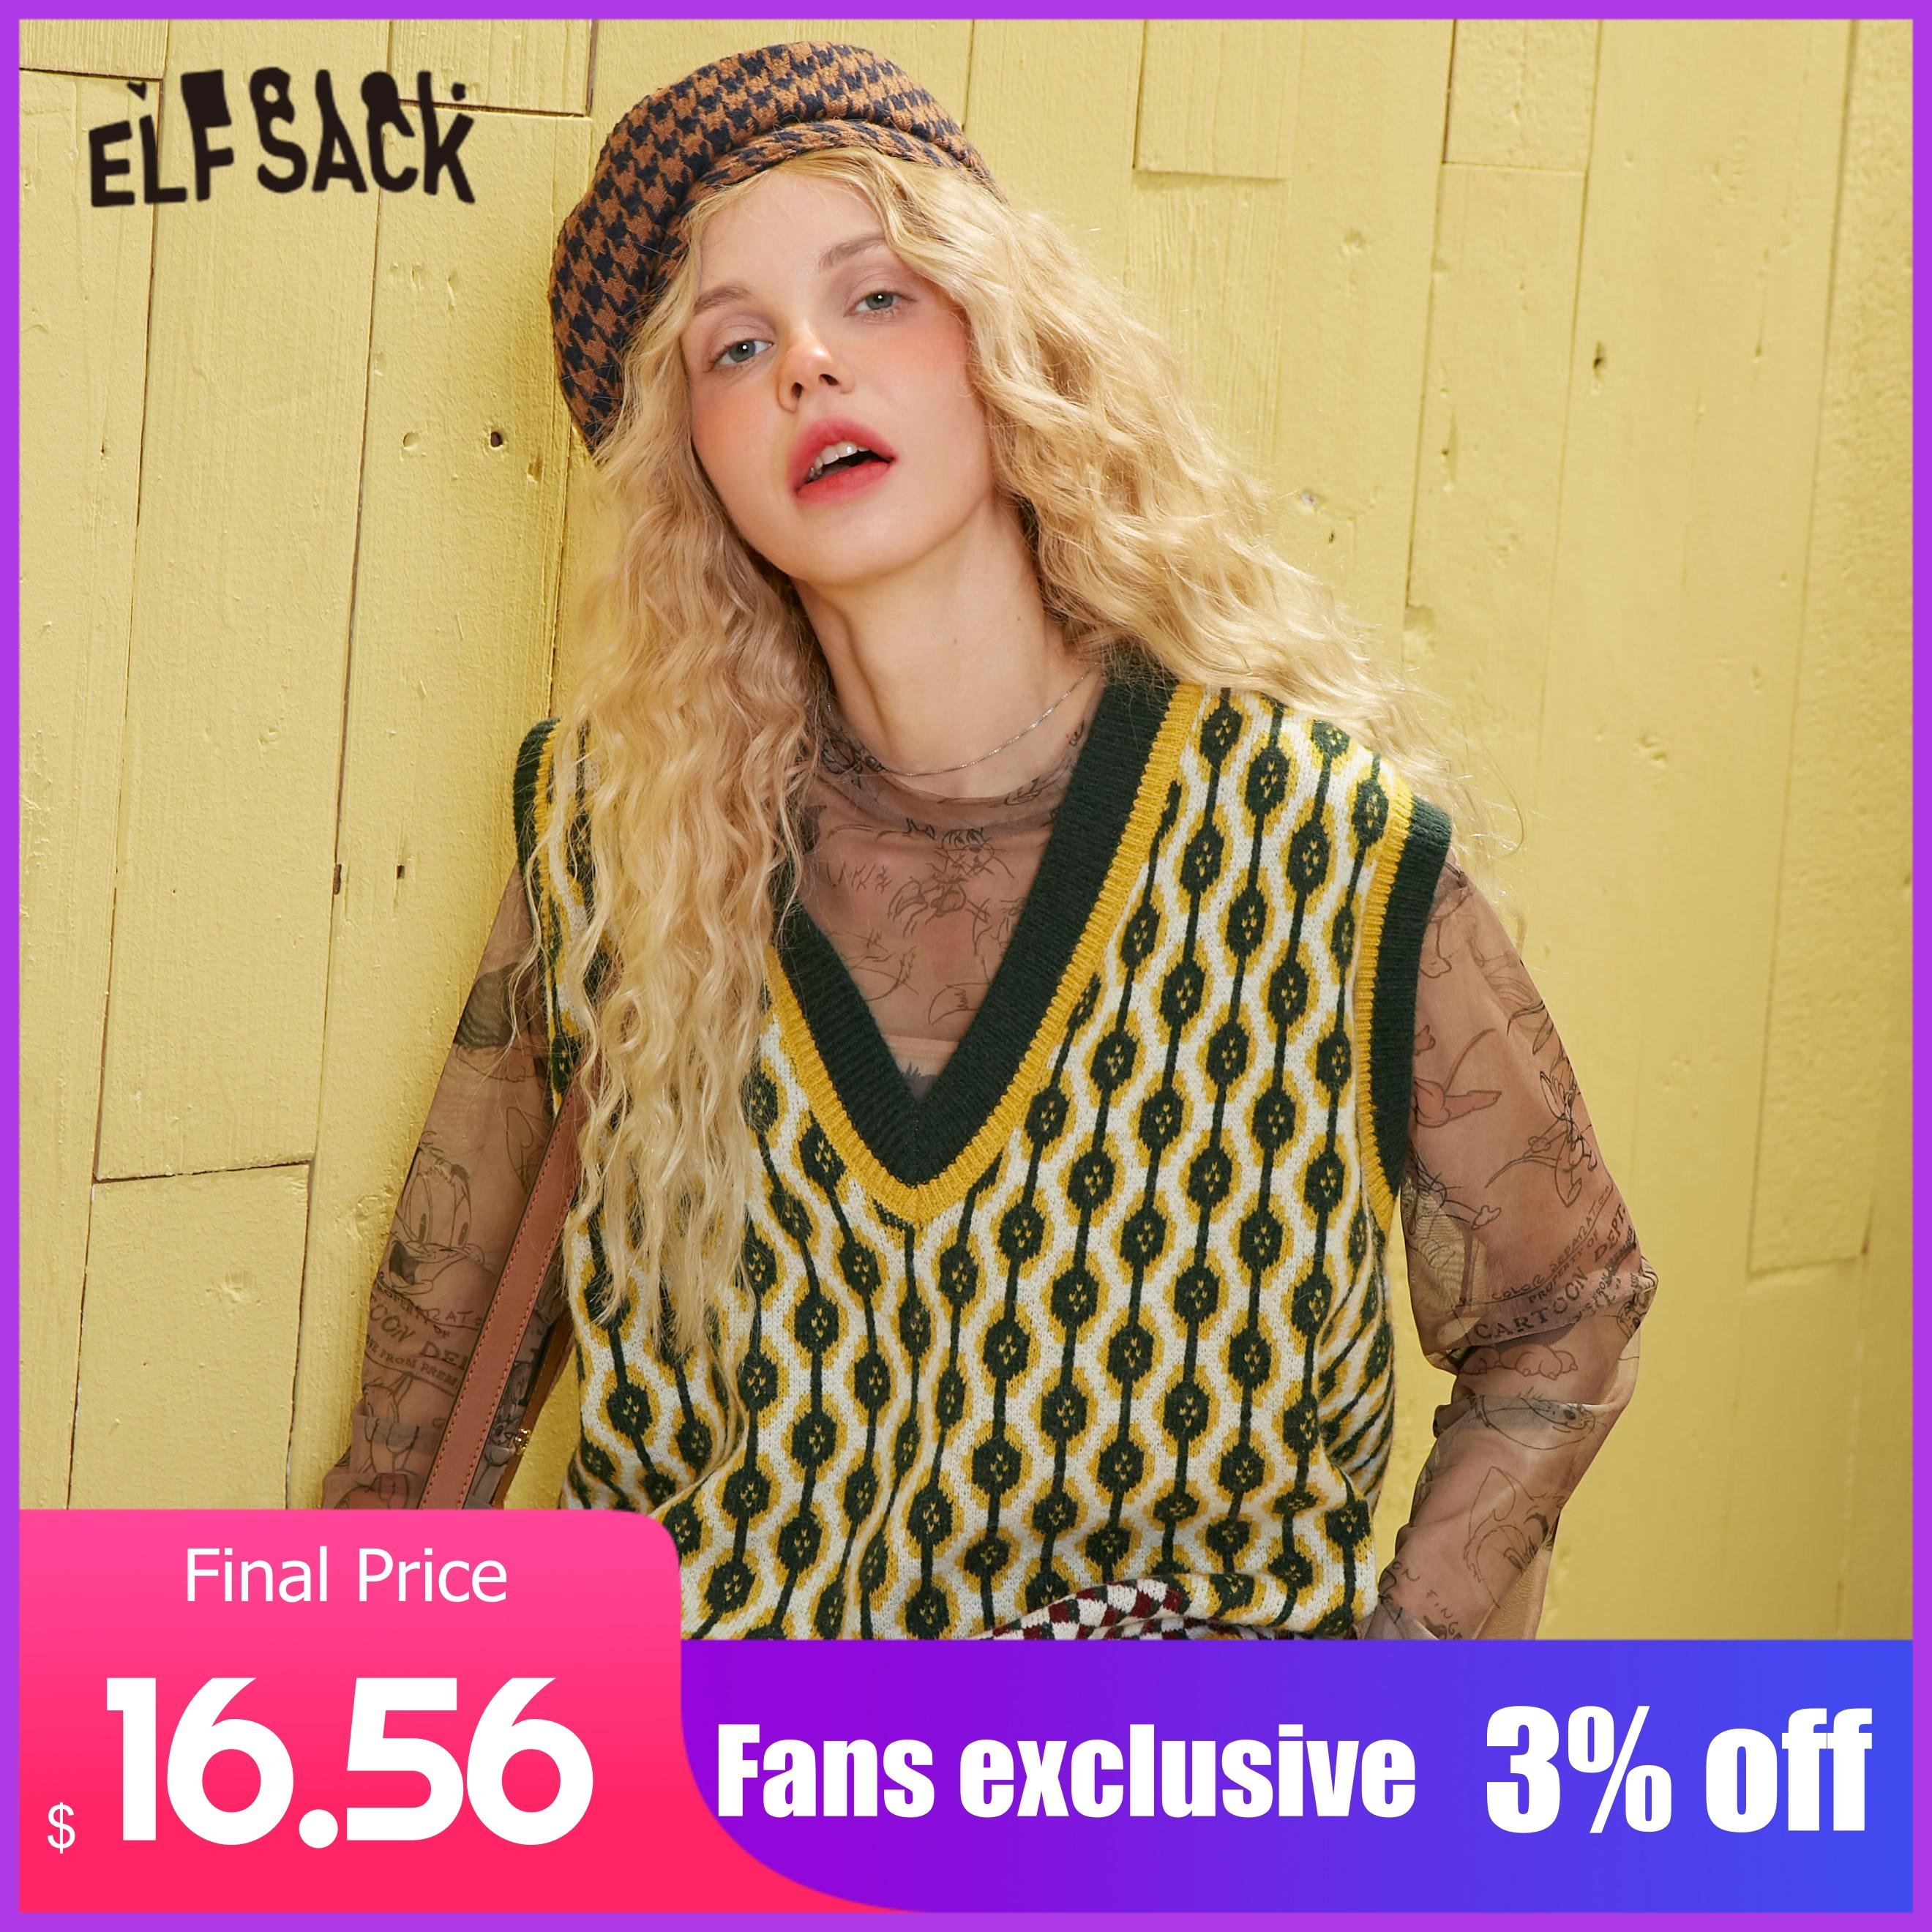 ELFSACK Green Colorblock Jacquard Knit Pullover Casual Women Sweater Vest 2020 Spring Burgundy V Neck Sleeveless Girly Daily Top